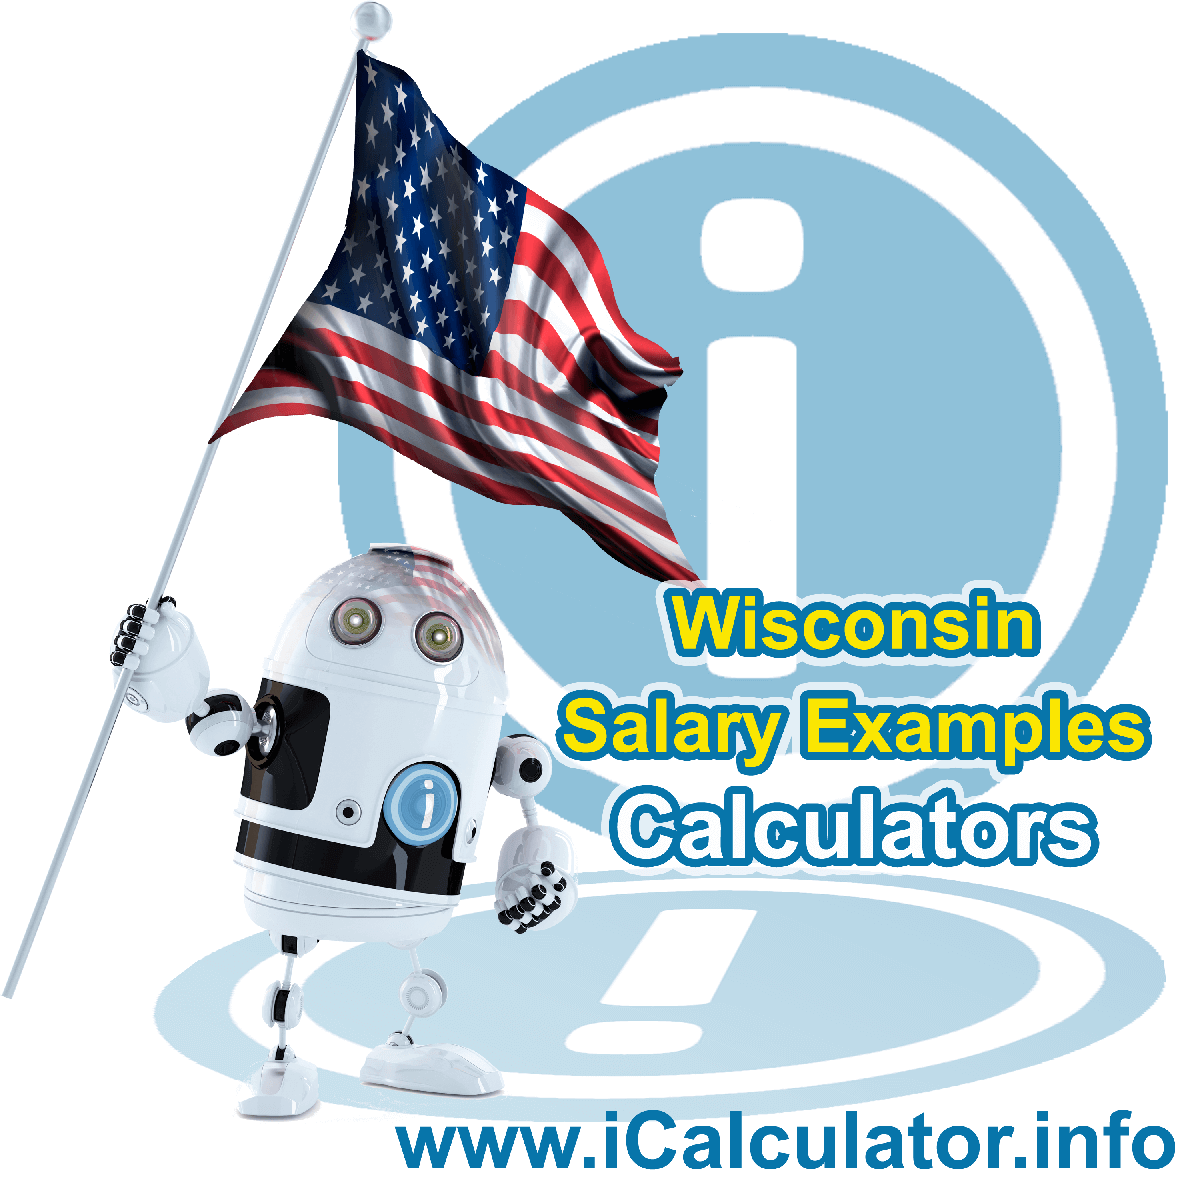 Wisconsin Salary Example for $60.00 in 2020 | iCalculator | $60.00 salary example for employee and employer paying Wisconsin State tincome taxes. Detailed salary after tax calculation including Wisconsin State Tax, Federal State Tax, Medicare Deductions, Social Security, Capital Gains and other income tax and salary deductions complete with supporting Wisconsin state tax tables